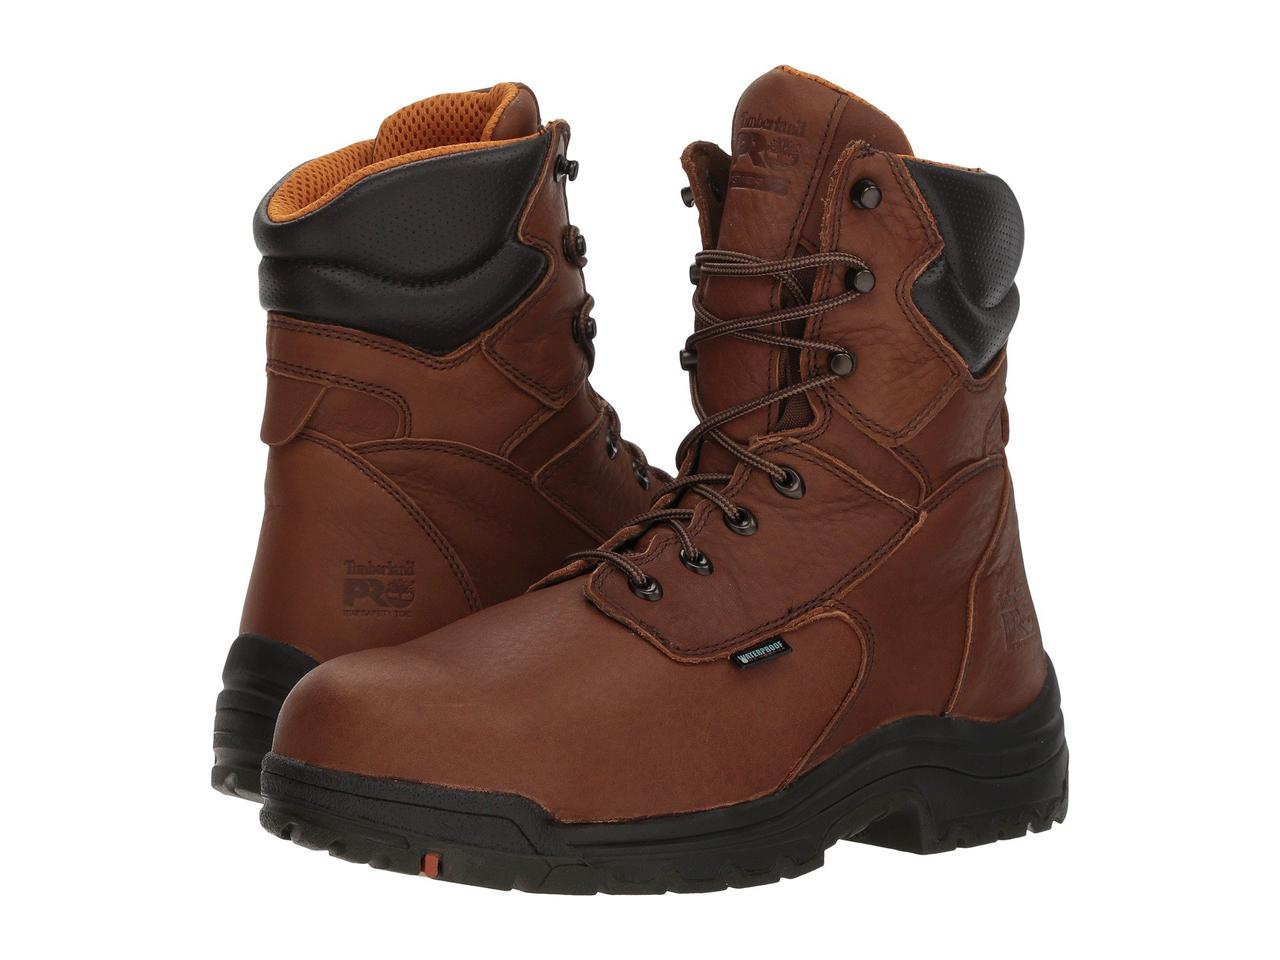 "Ботинки/Сапоги (Оригинал) Timberland PRO Titan® 8"" Waterproof Safety Toe Cappucino Full-Grain Leather"